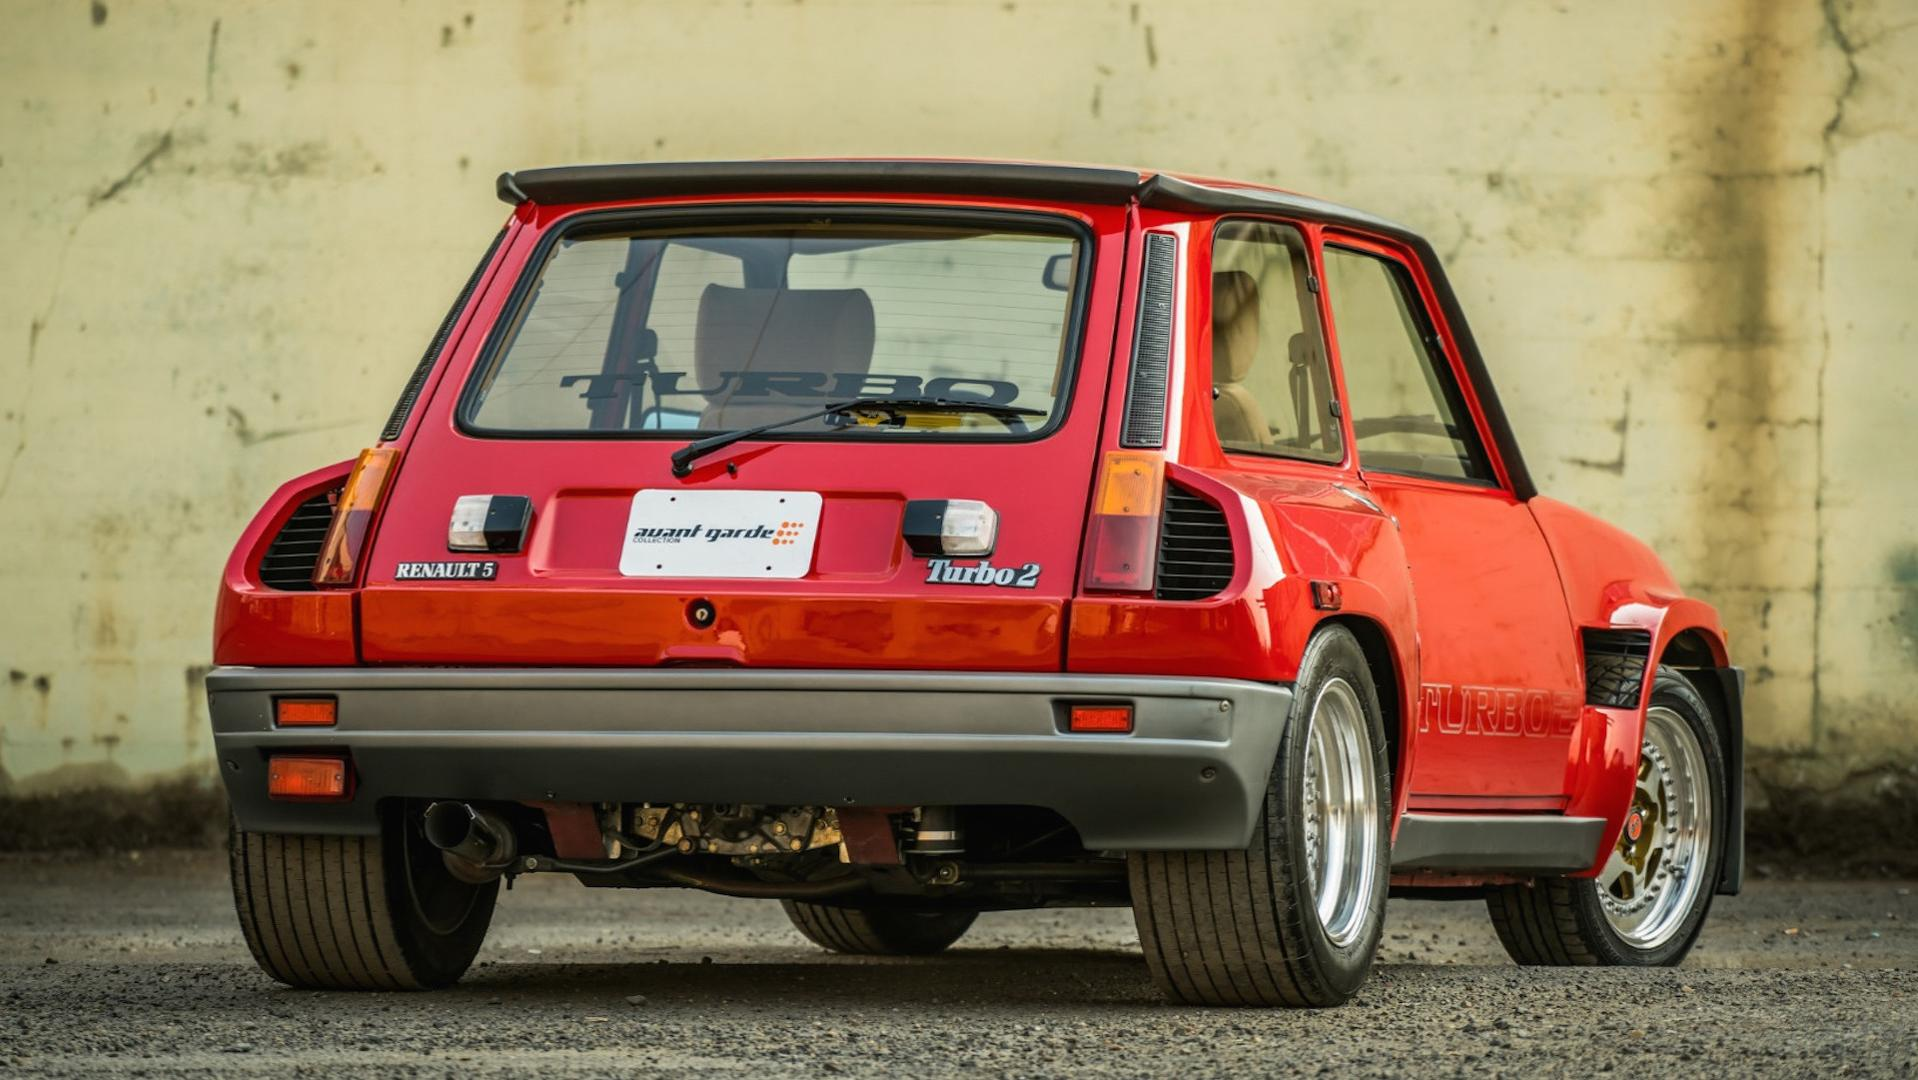 Low Mileage Renault R5 Turbo 2 Evo Sells For Nearly Six Figures Update